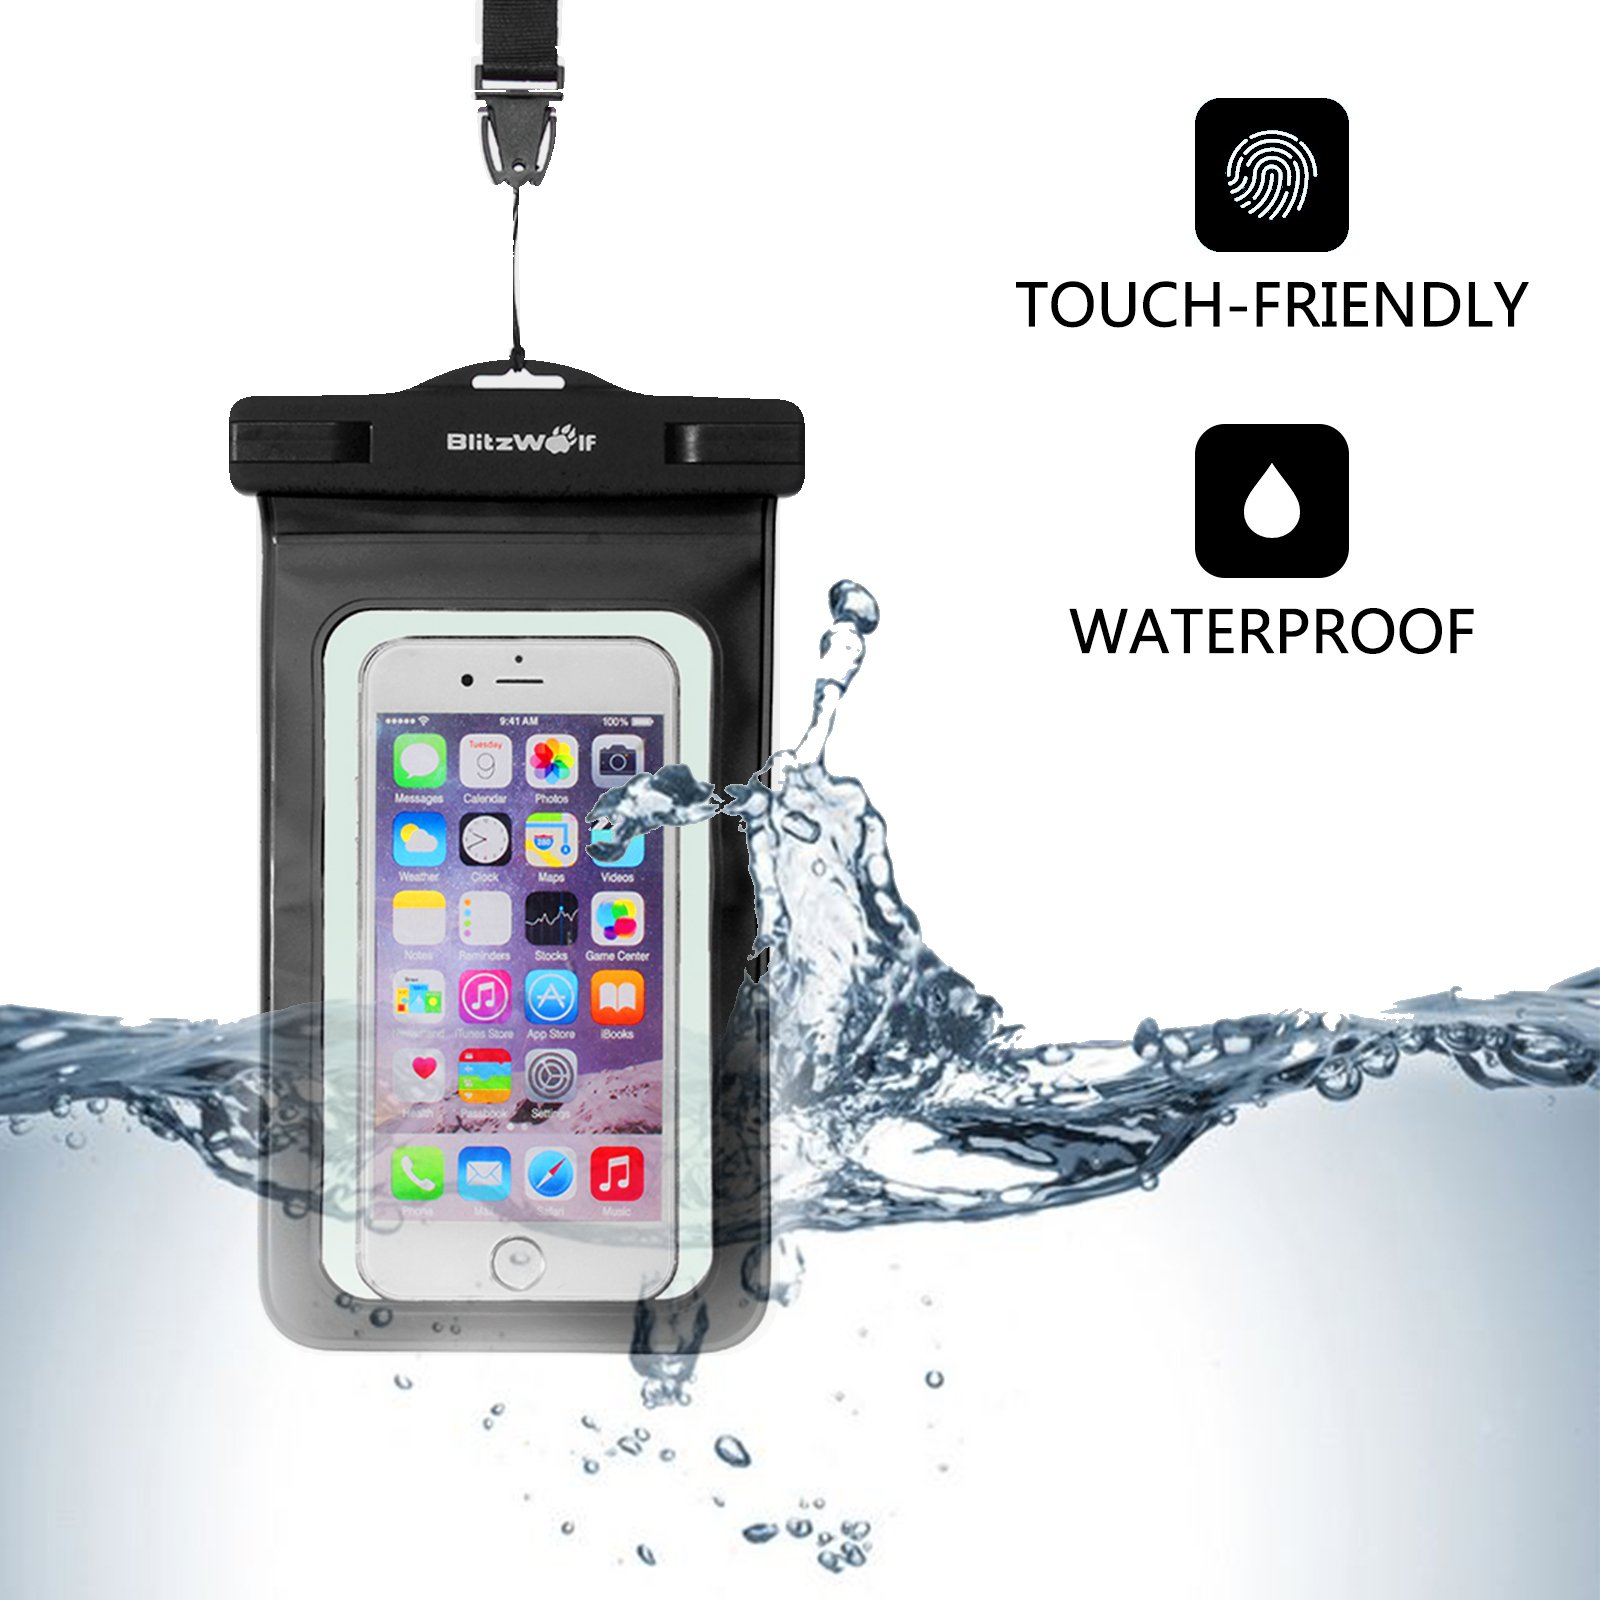 Waterproof Phone Case, BlitzWolf IPX8 Underwater Dry Bag, Universal Durable Touch Screen Watertight Sealed Bag with Portable Lanyard for iPhone SE/7/7 Plus/6S Plus/6S/6/5S/5C/5, Samsung, LG,Sony and Up to 6 inch Smartphones(1 Pack-Black)